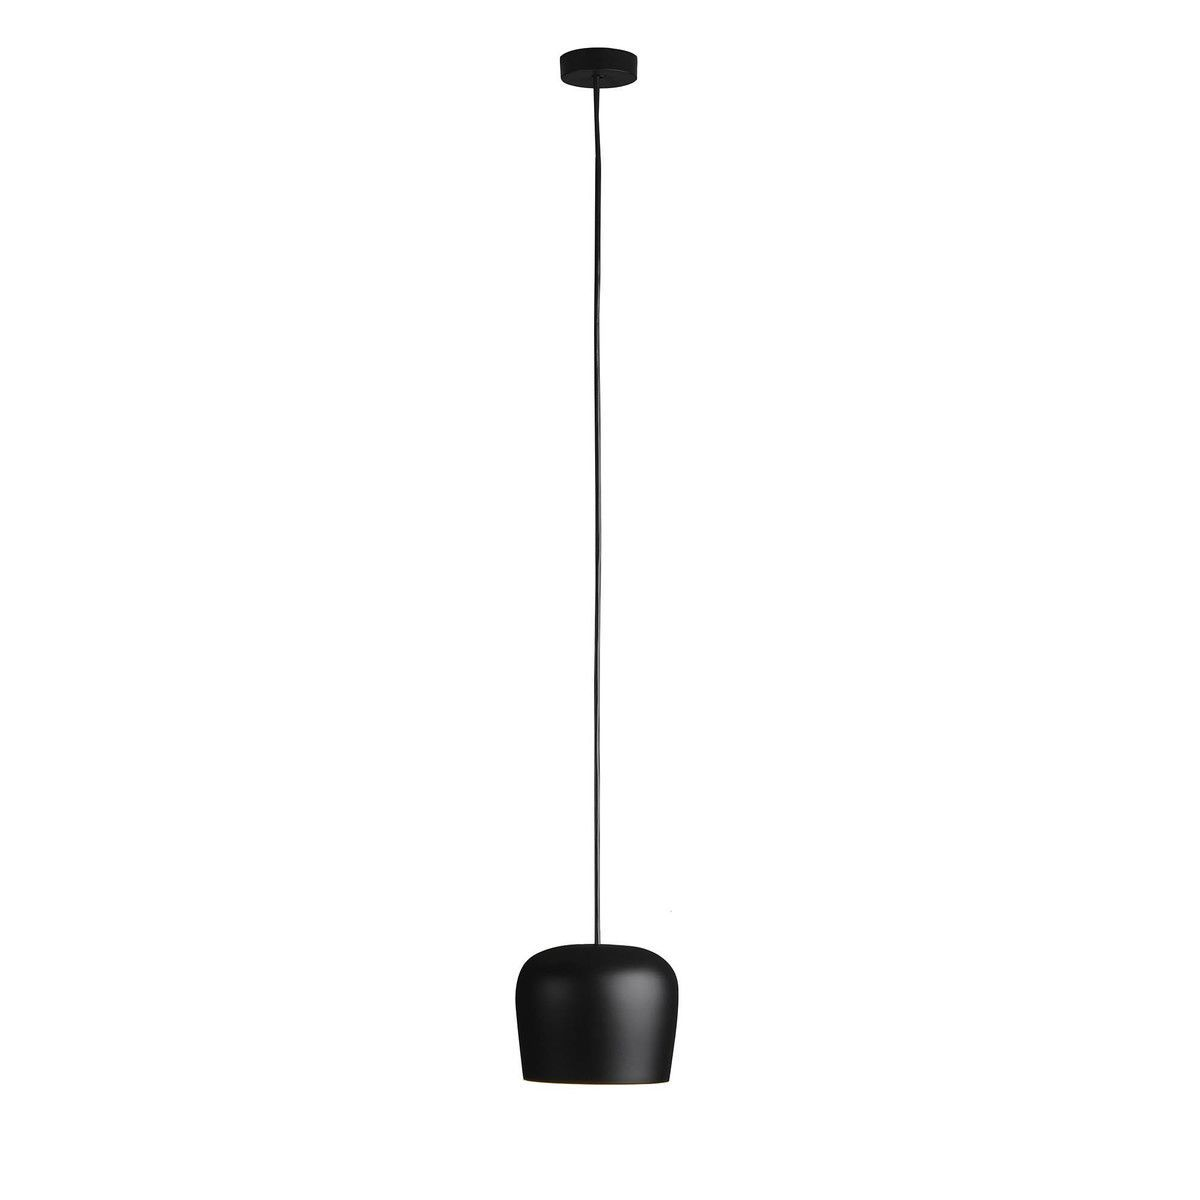 aim small fix led suspension lamp 17cm flos. Black Bedroom Furniture Sets. Home Design Ideas